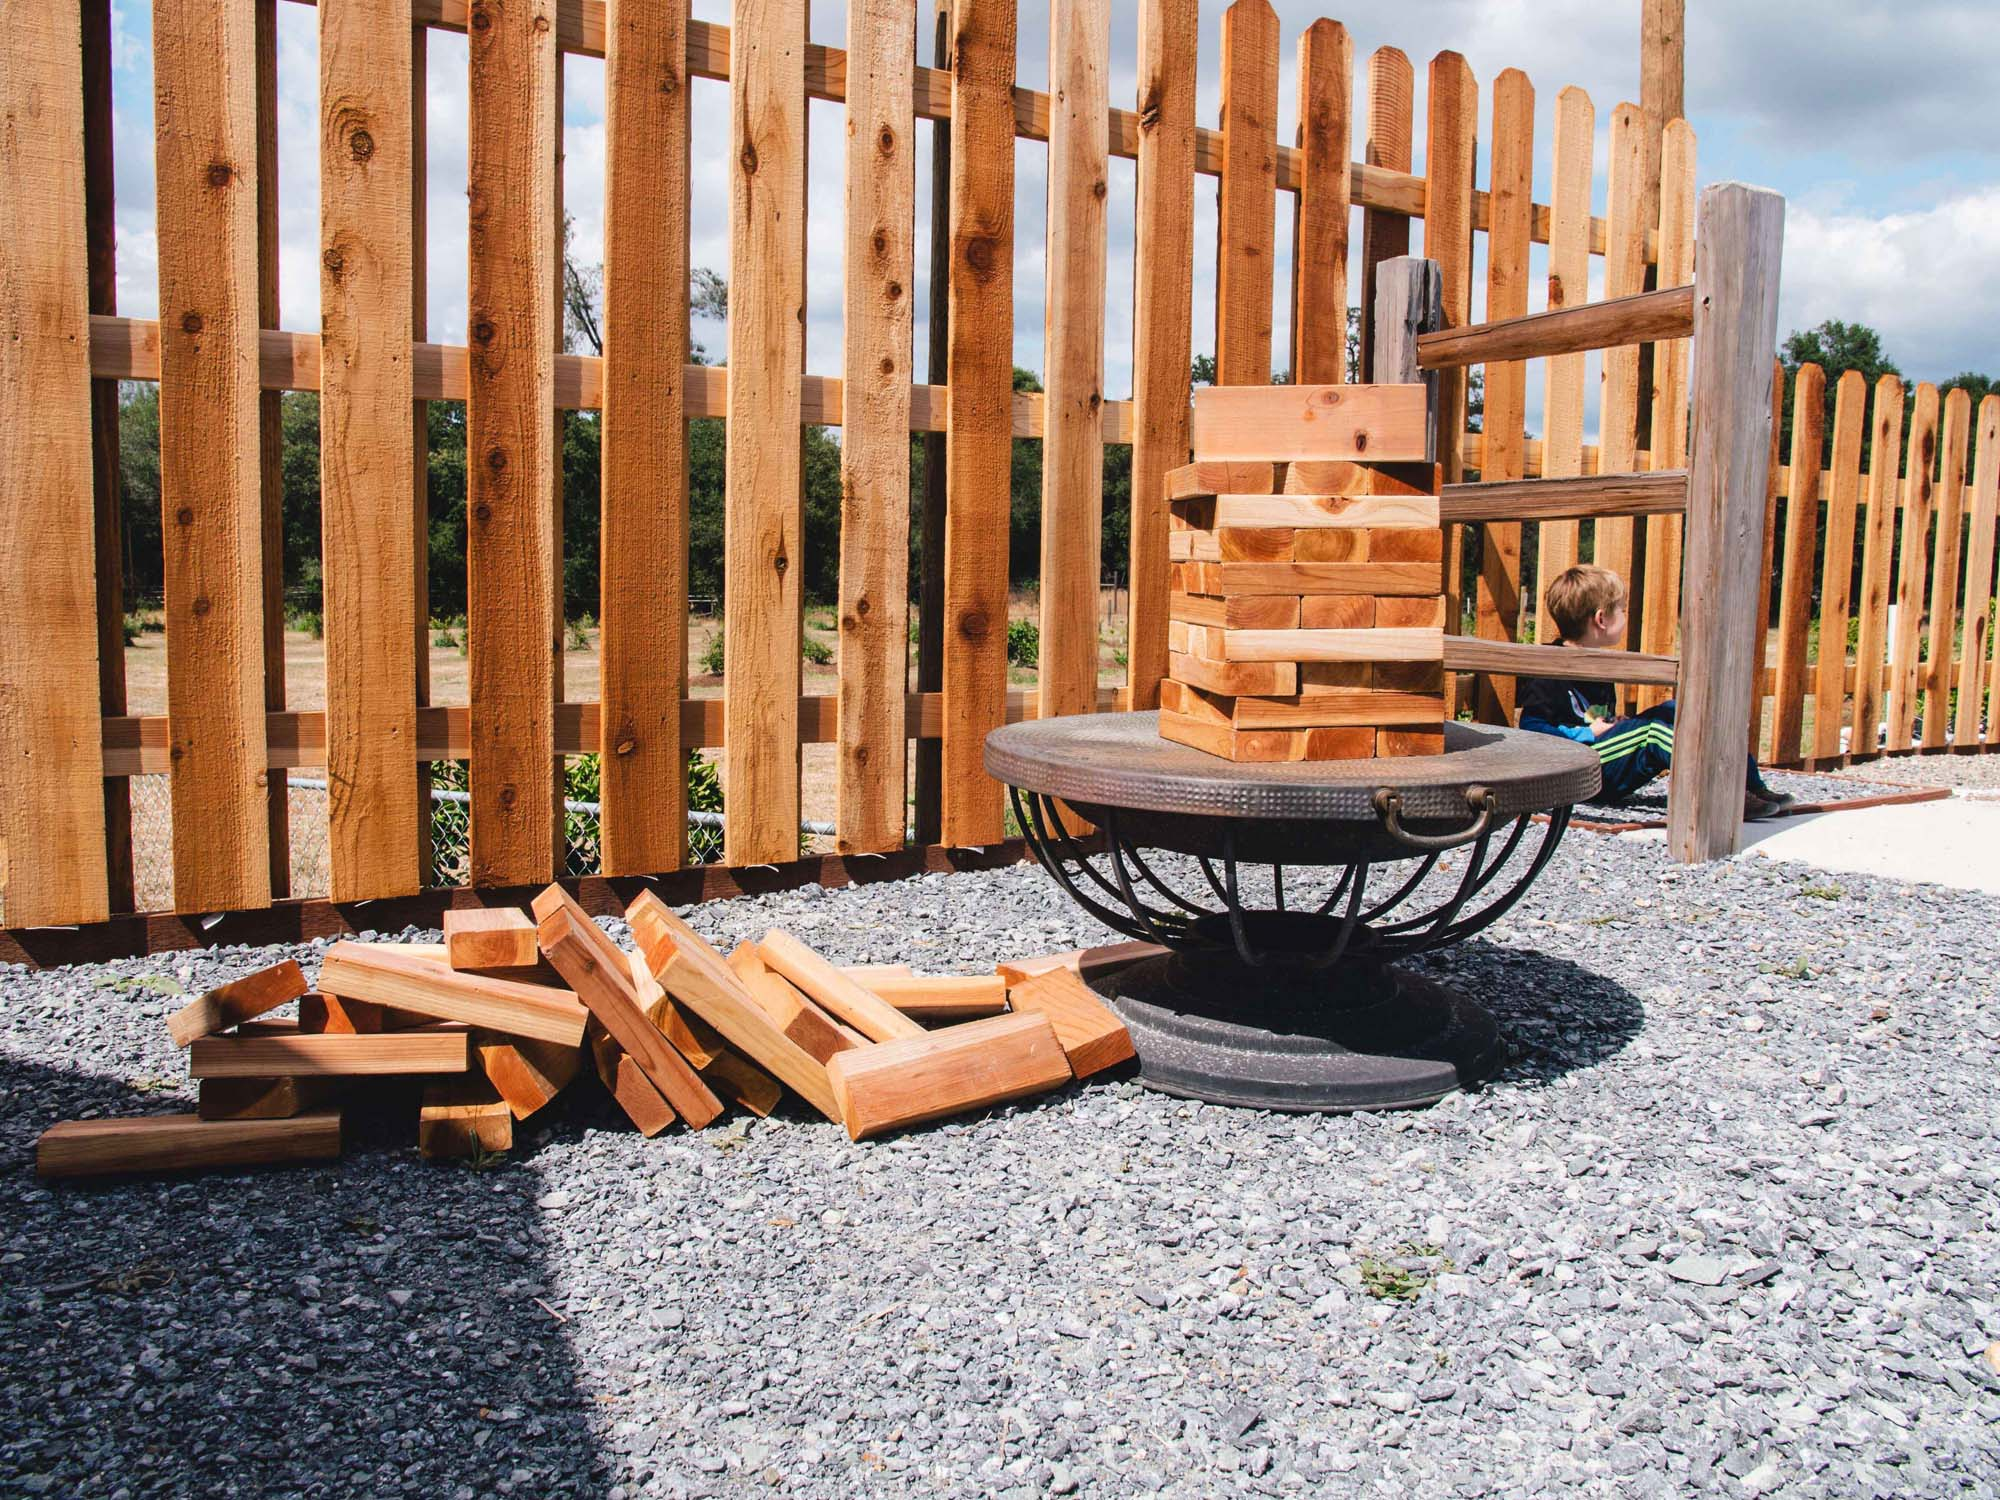 Fence Installation FAQs